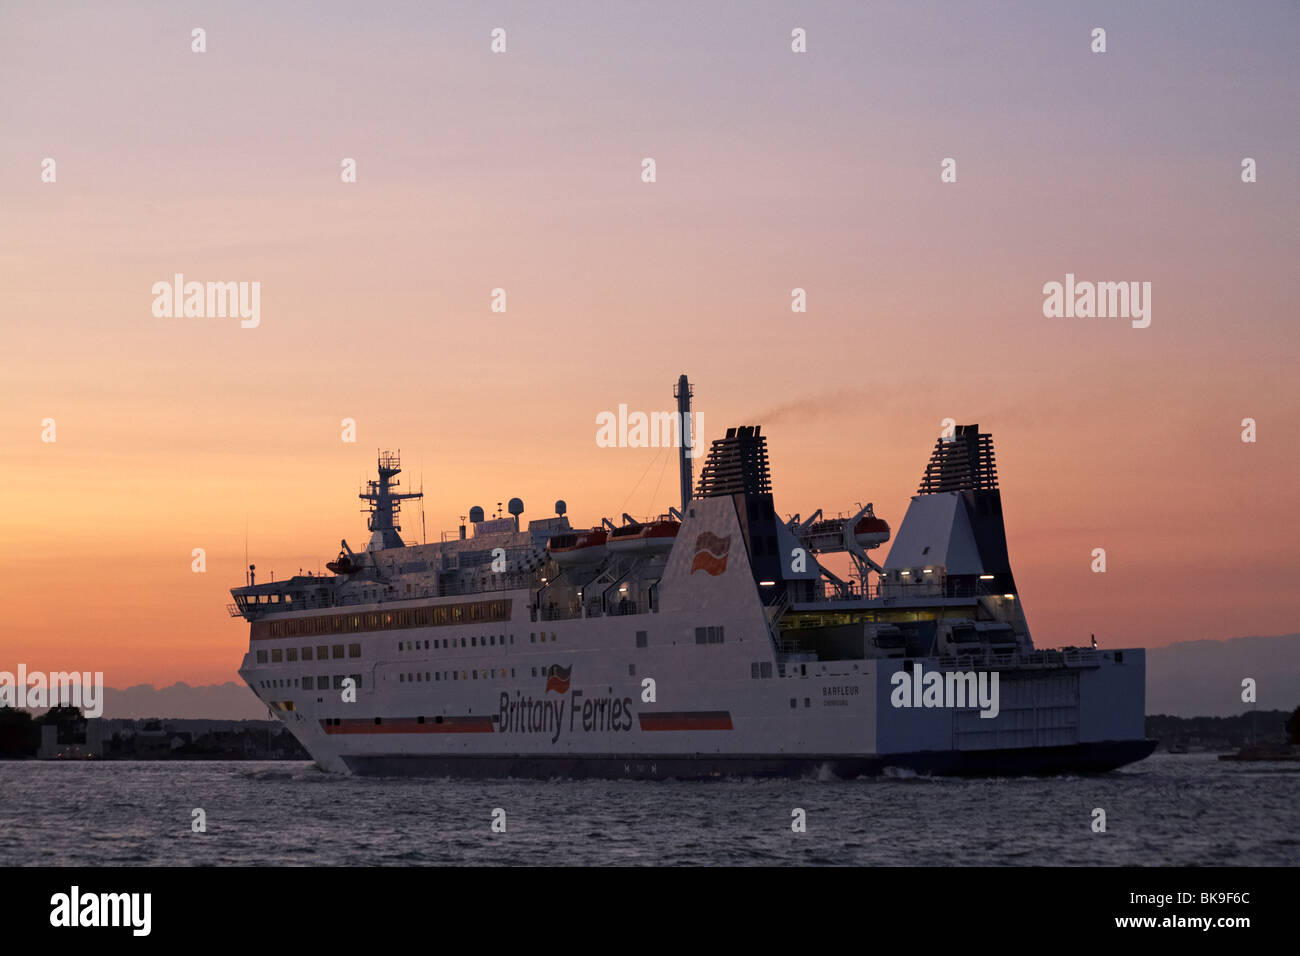 Barfleur cruise ferry ship information brittany ferries - Brittany Ferries Ferry Barfleur Returning To Poole Harbour From Cherbourg